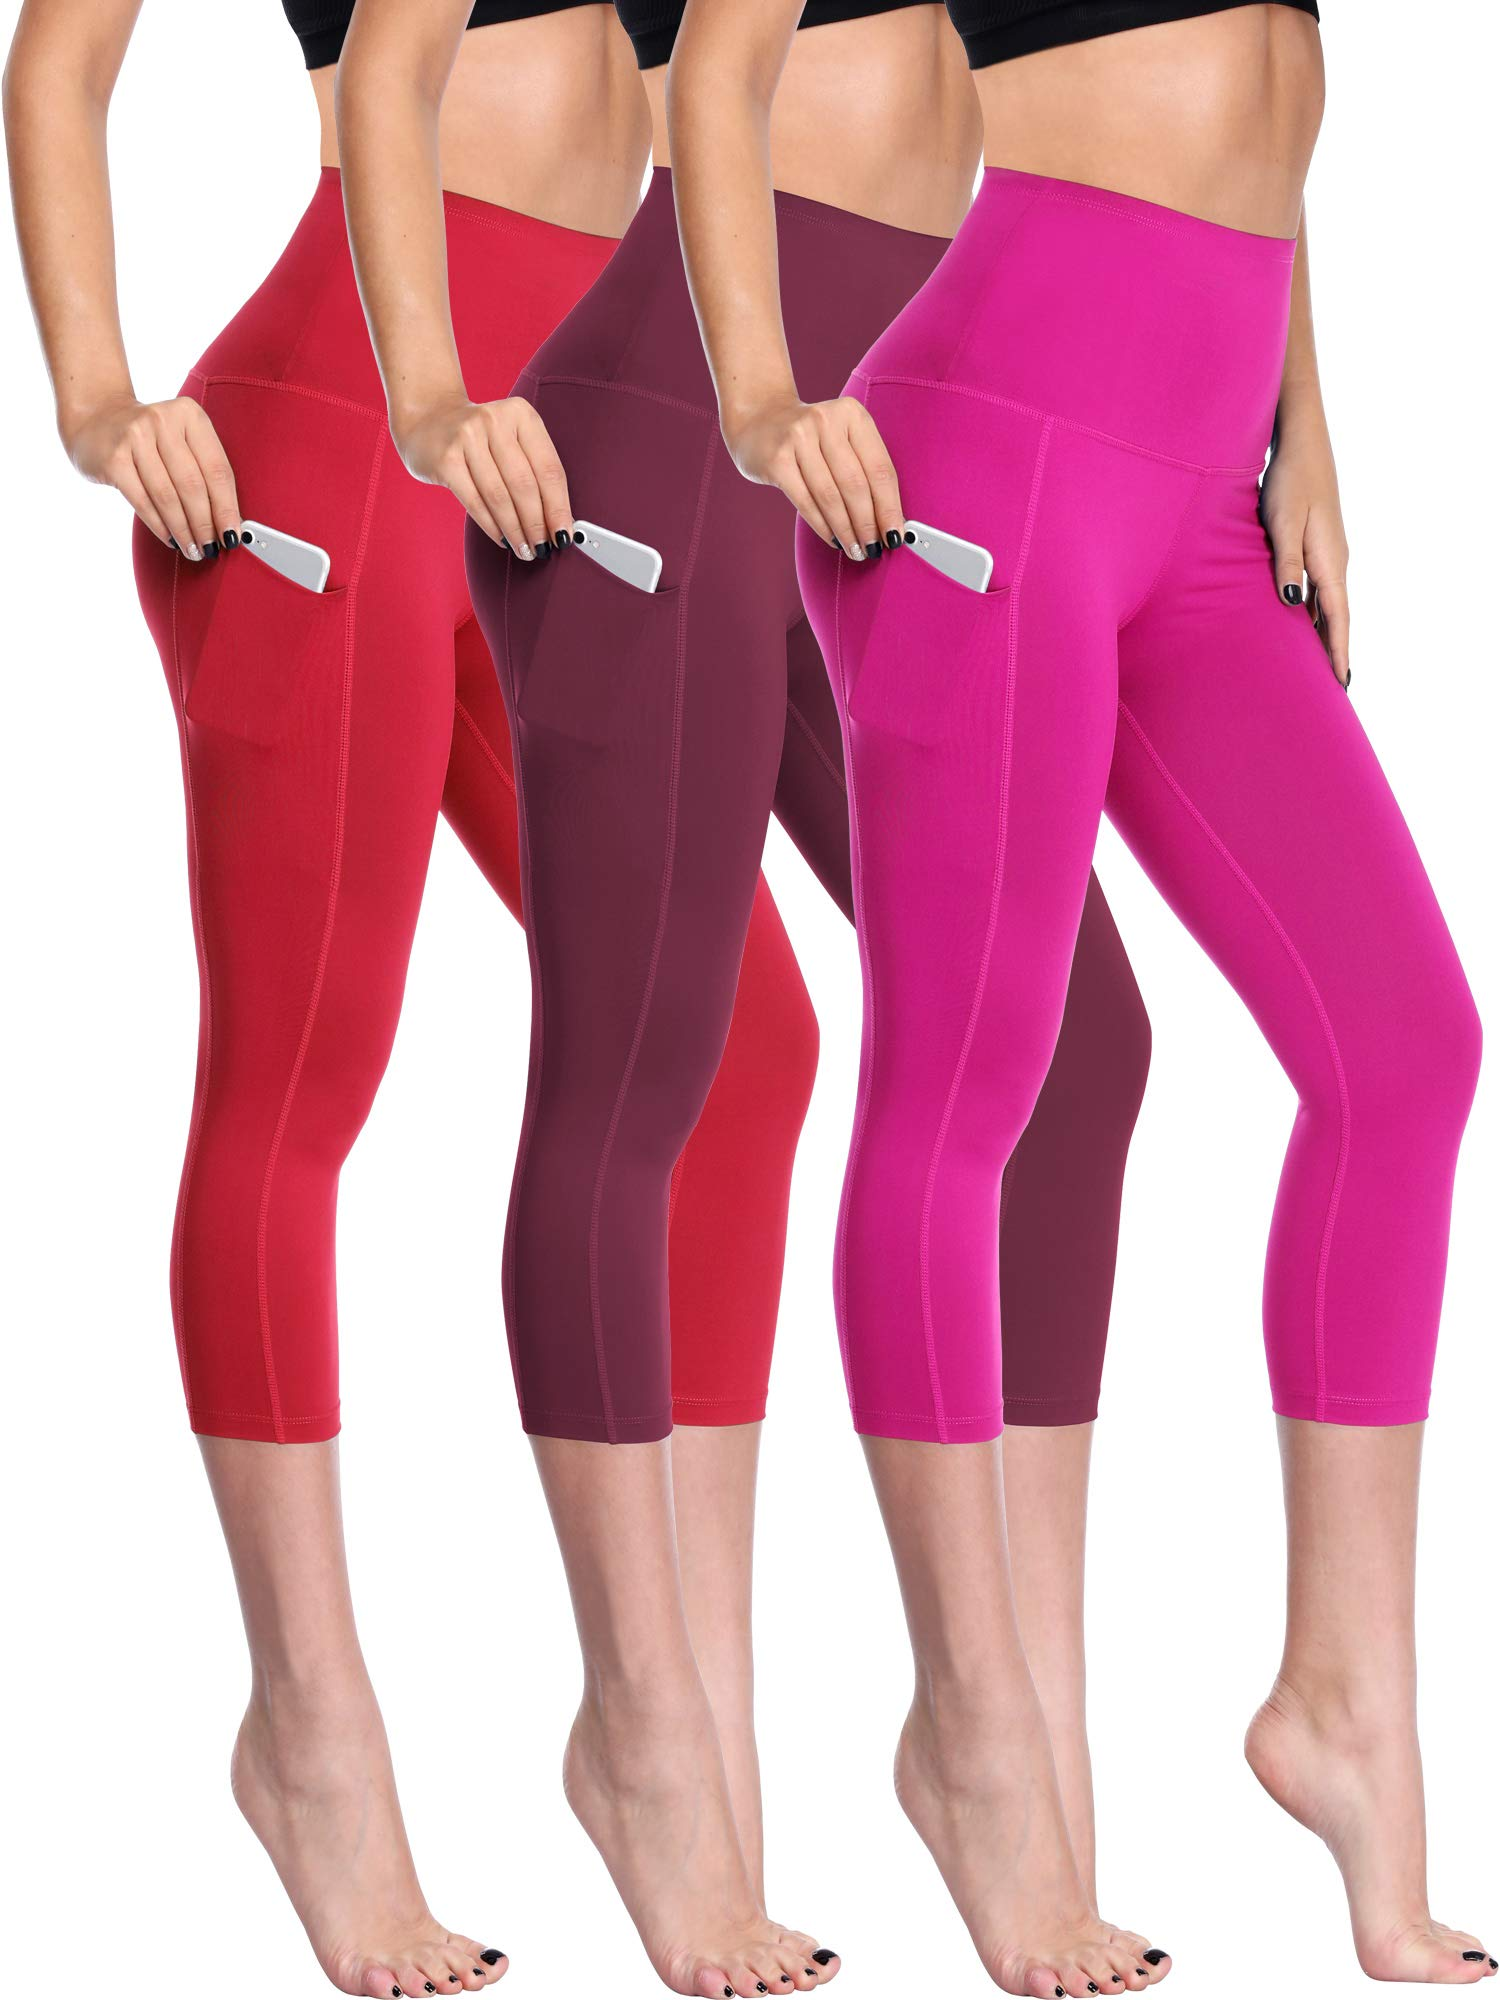 Neleus Women's 3 Pack Tummy Control High Waist Capris Leggings Yoga Pants,109,Red,Wine Red,Rose Red,L by Neleus